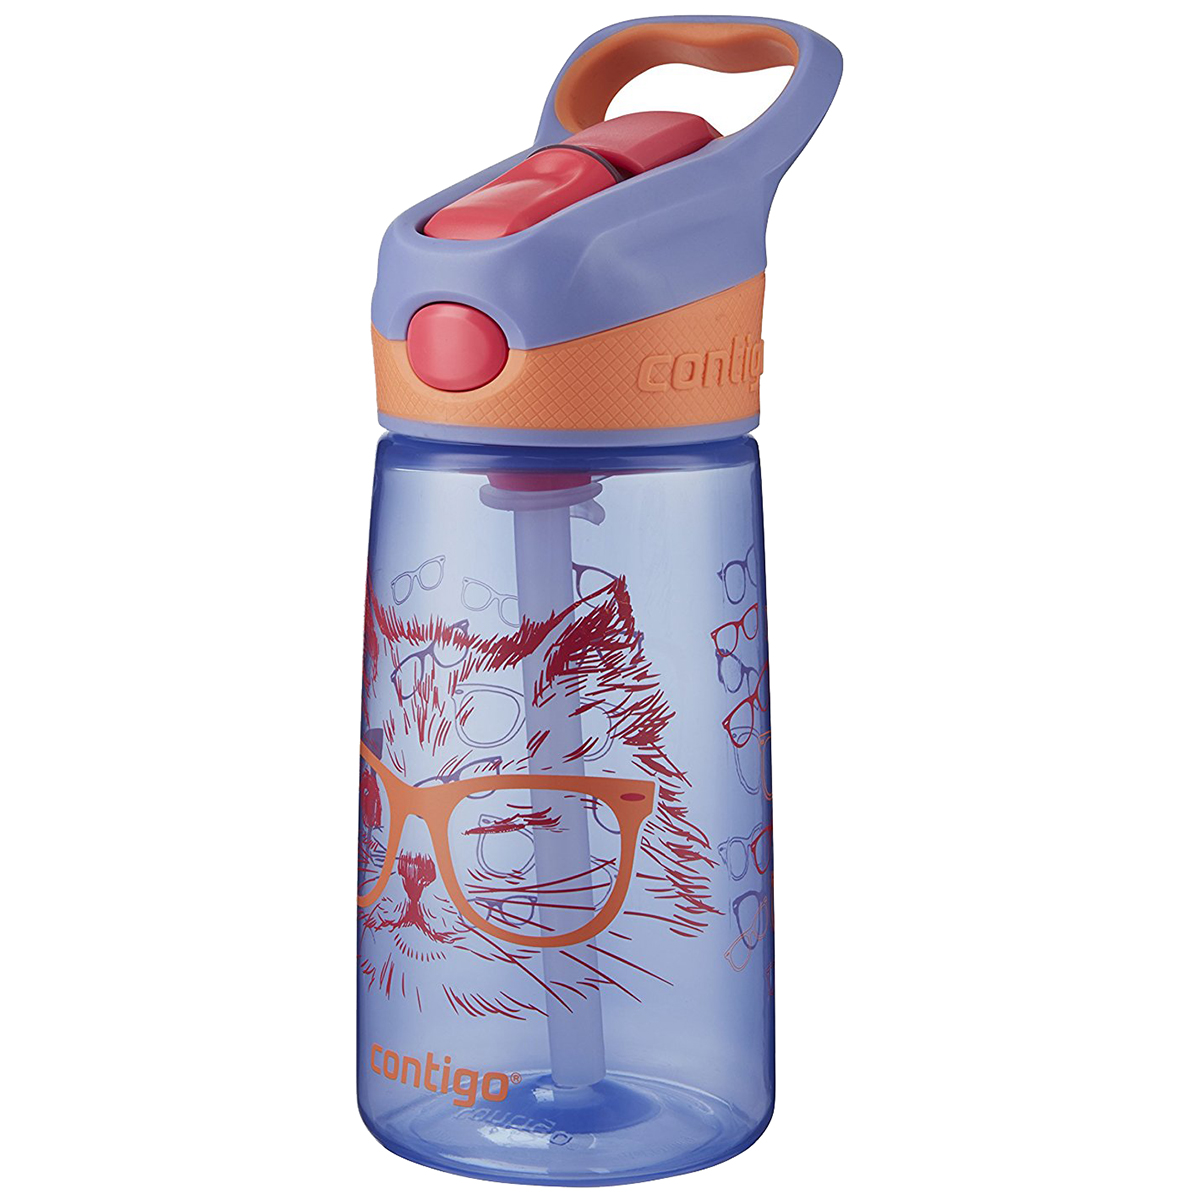 Contigo-14-oz-Kid-039-s-Striker-Autospout-Water-Bottle miniature 54